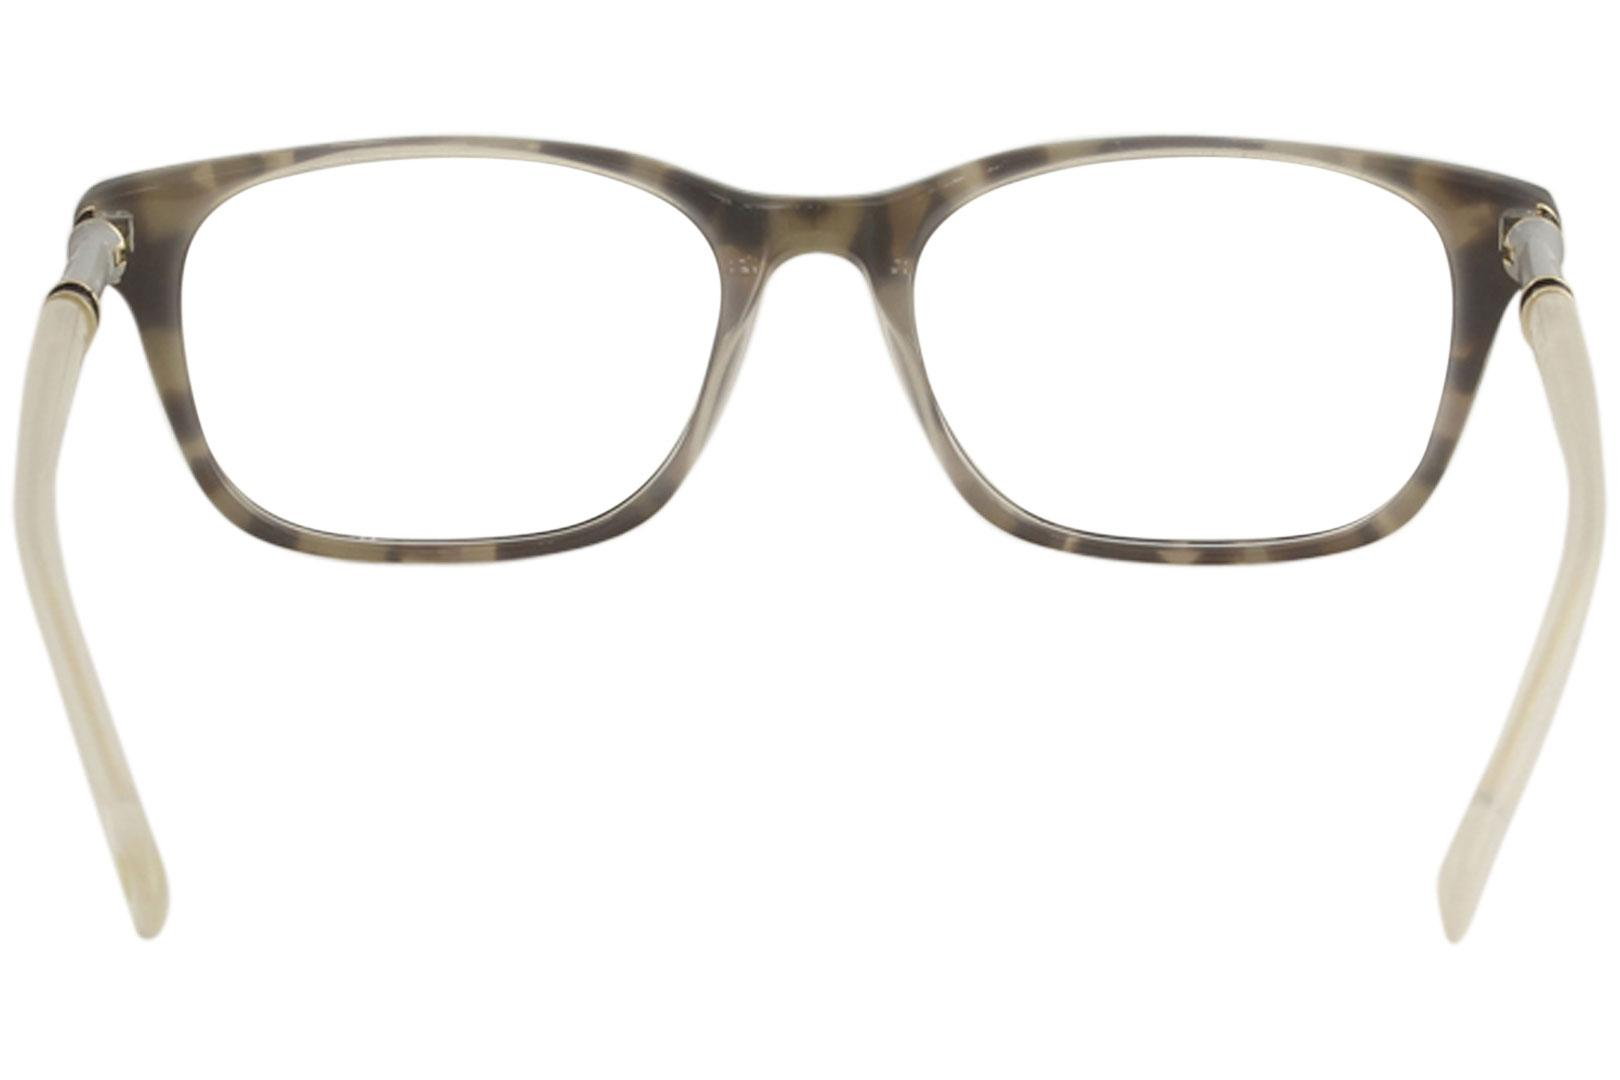 94e38c5e179 Lilly Pulitzer Women s Eyeglasses Bailey Full Rim Optical Frame by Lilly  Pulitzer